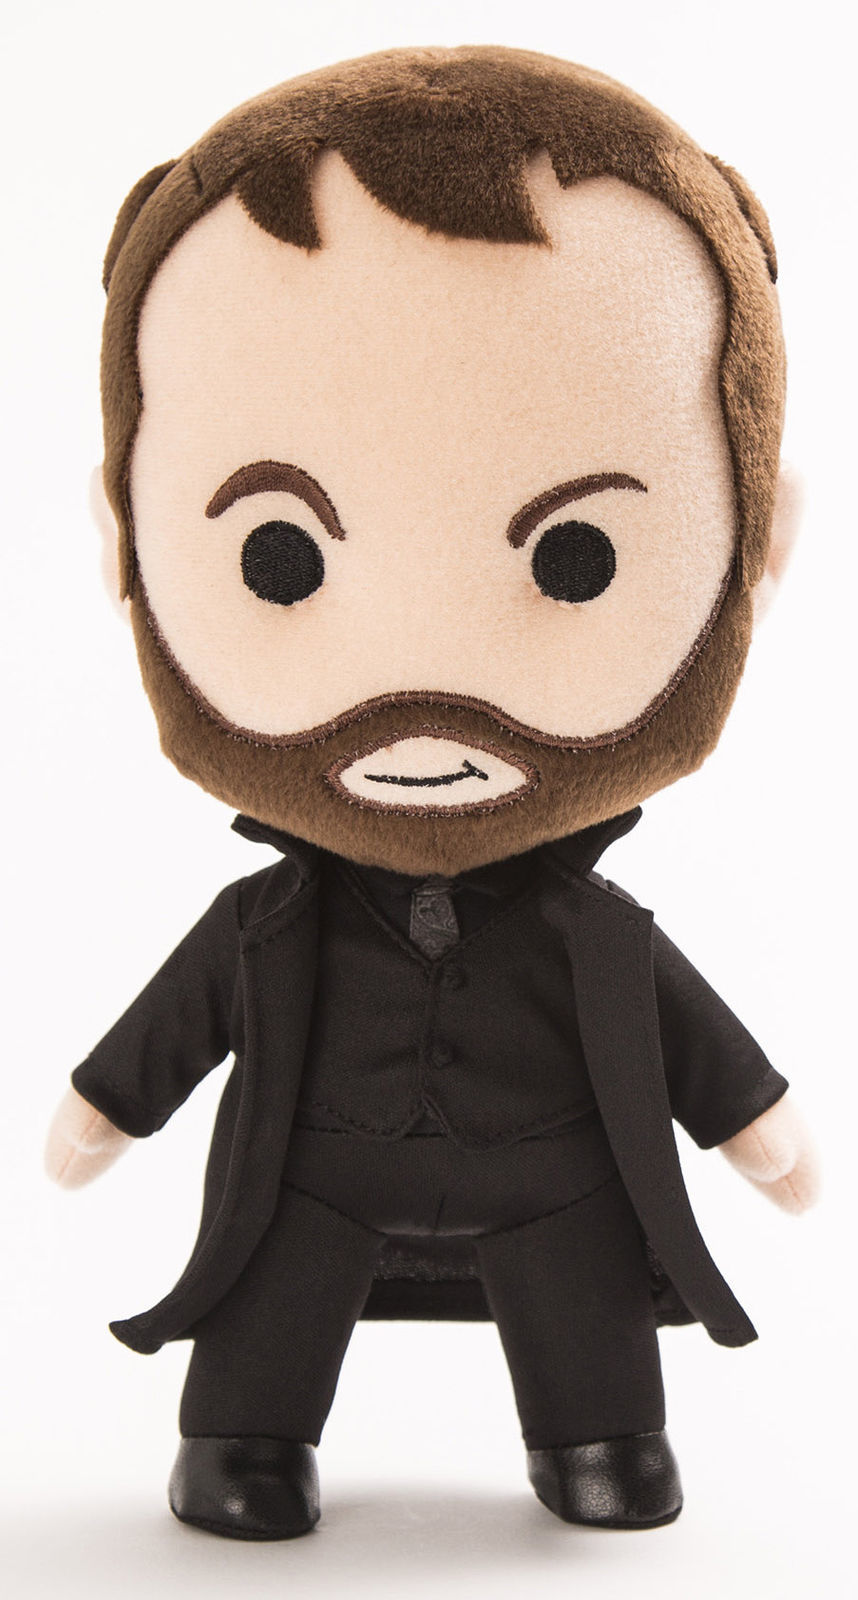 Supernatural Q-Pals Plush Crowley image